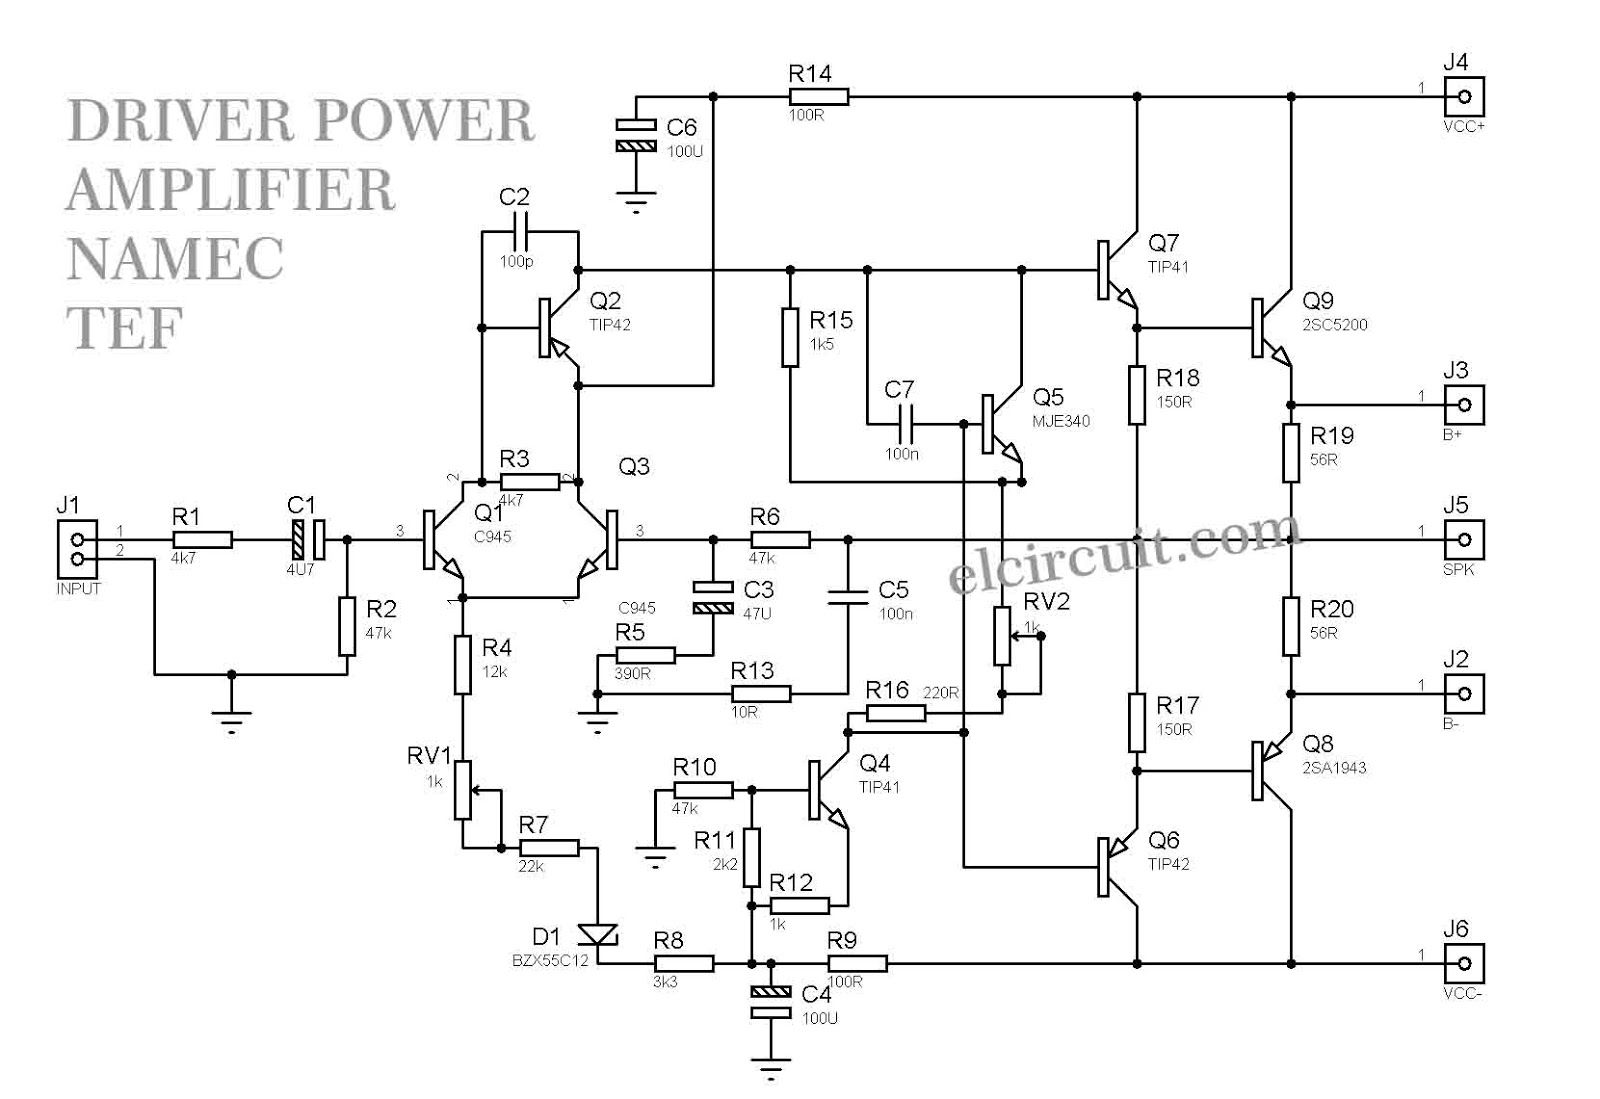 hight resolution of 1000w driver power amplifier namec tef electronic circuit electronic circuit circuit diagram audio